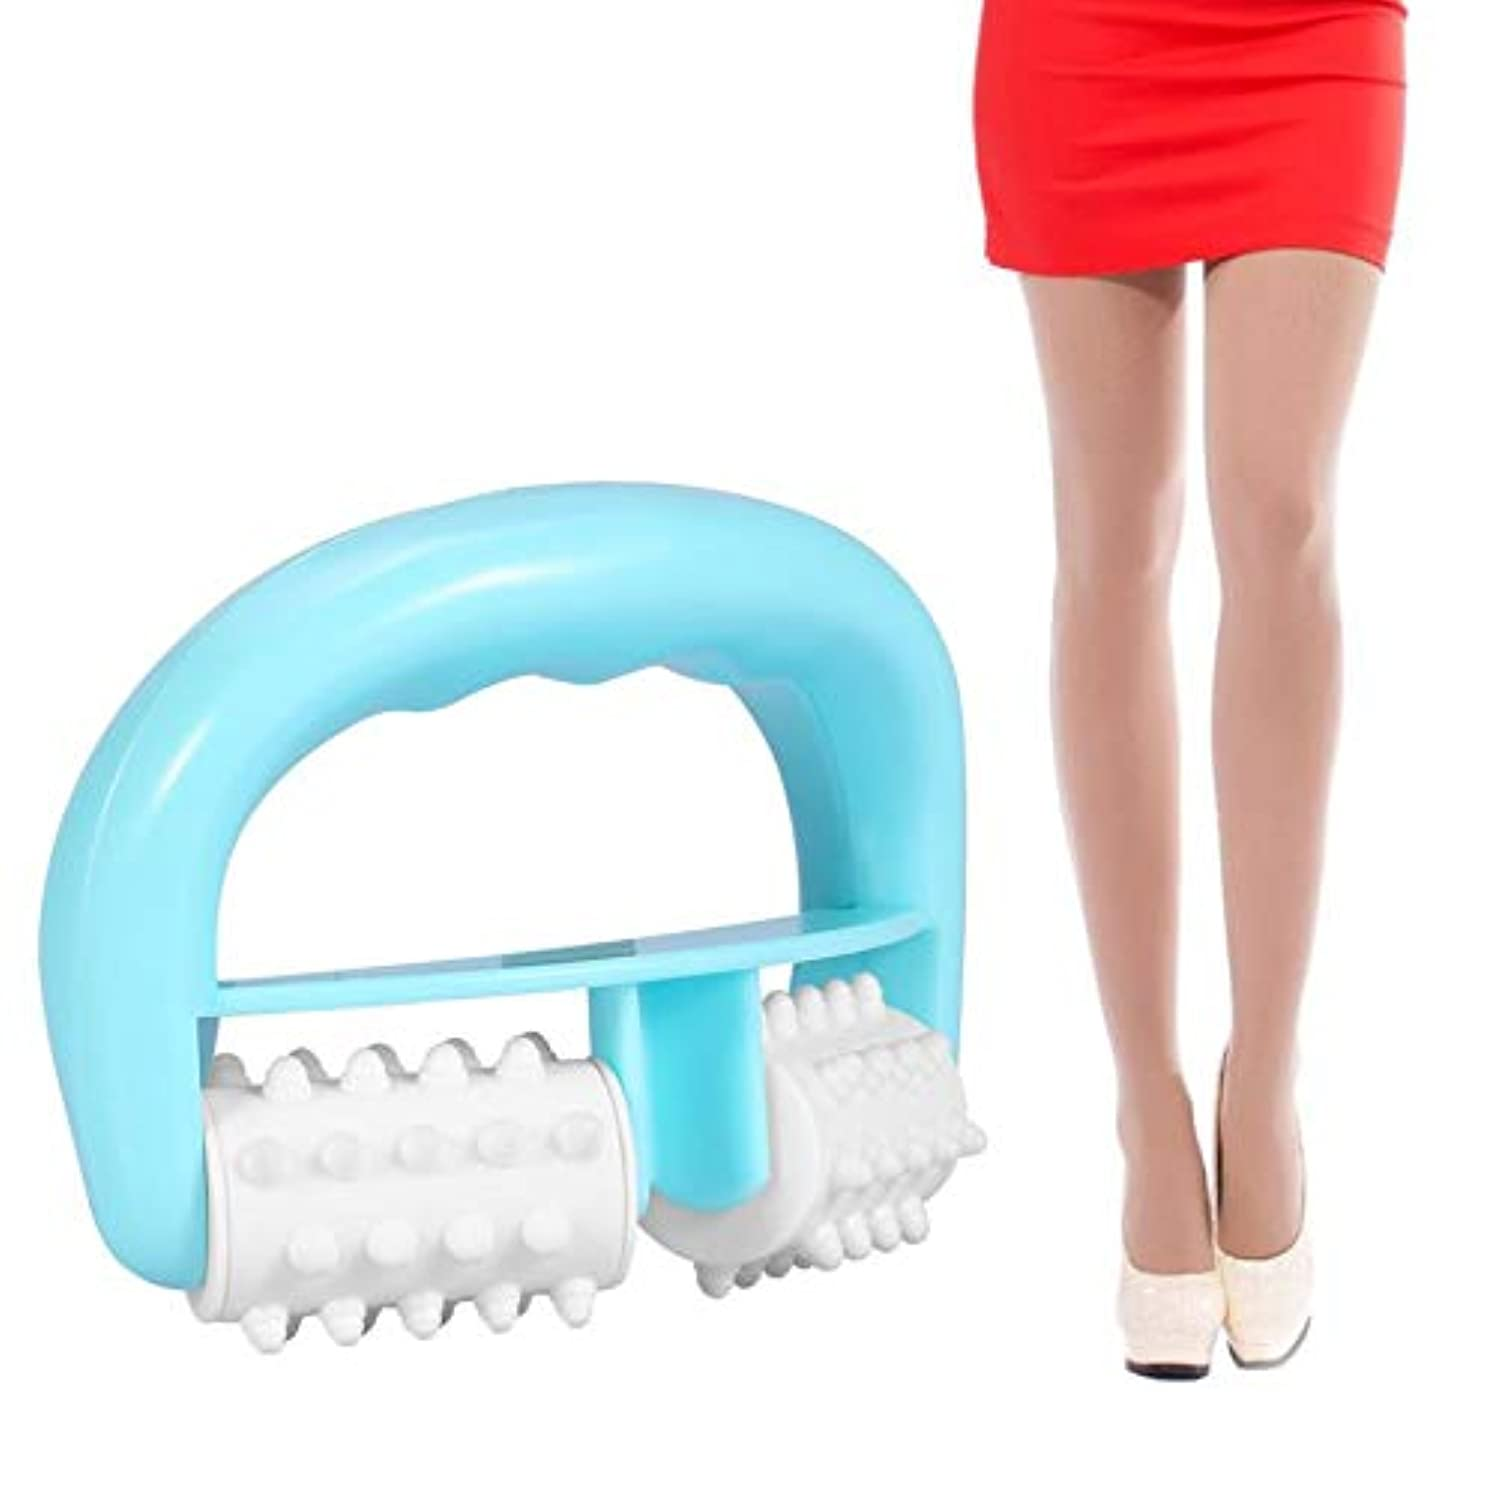 ふりをする適度に嘆くHandle Cell Roller Massager Mini Wheel Ball Slimming Body Leg Foot Hand Neck Fat Cellulite Control Pain Relief...